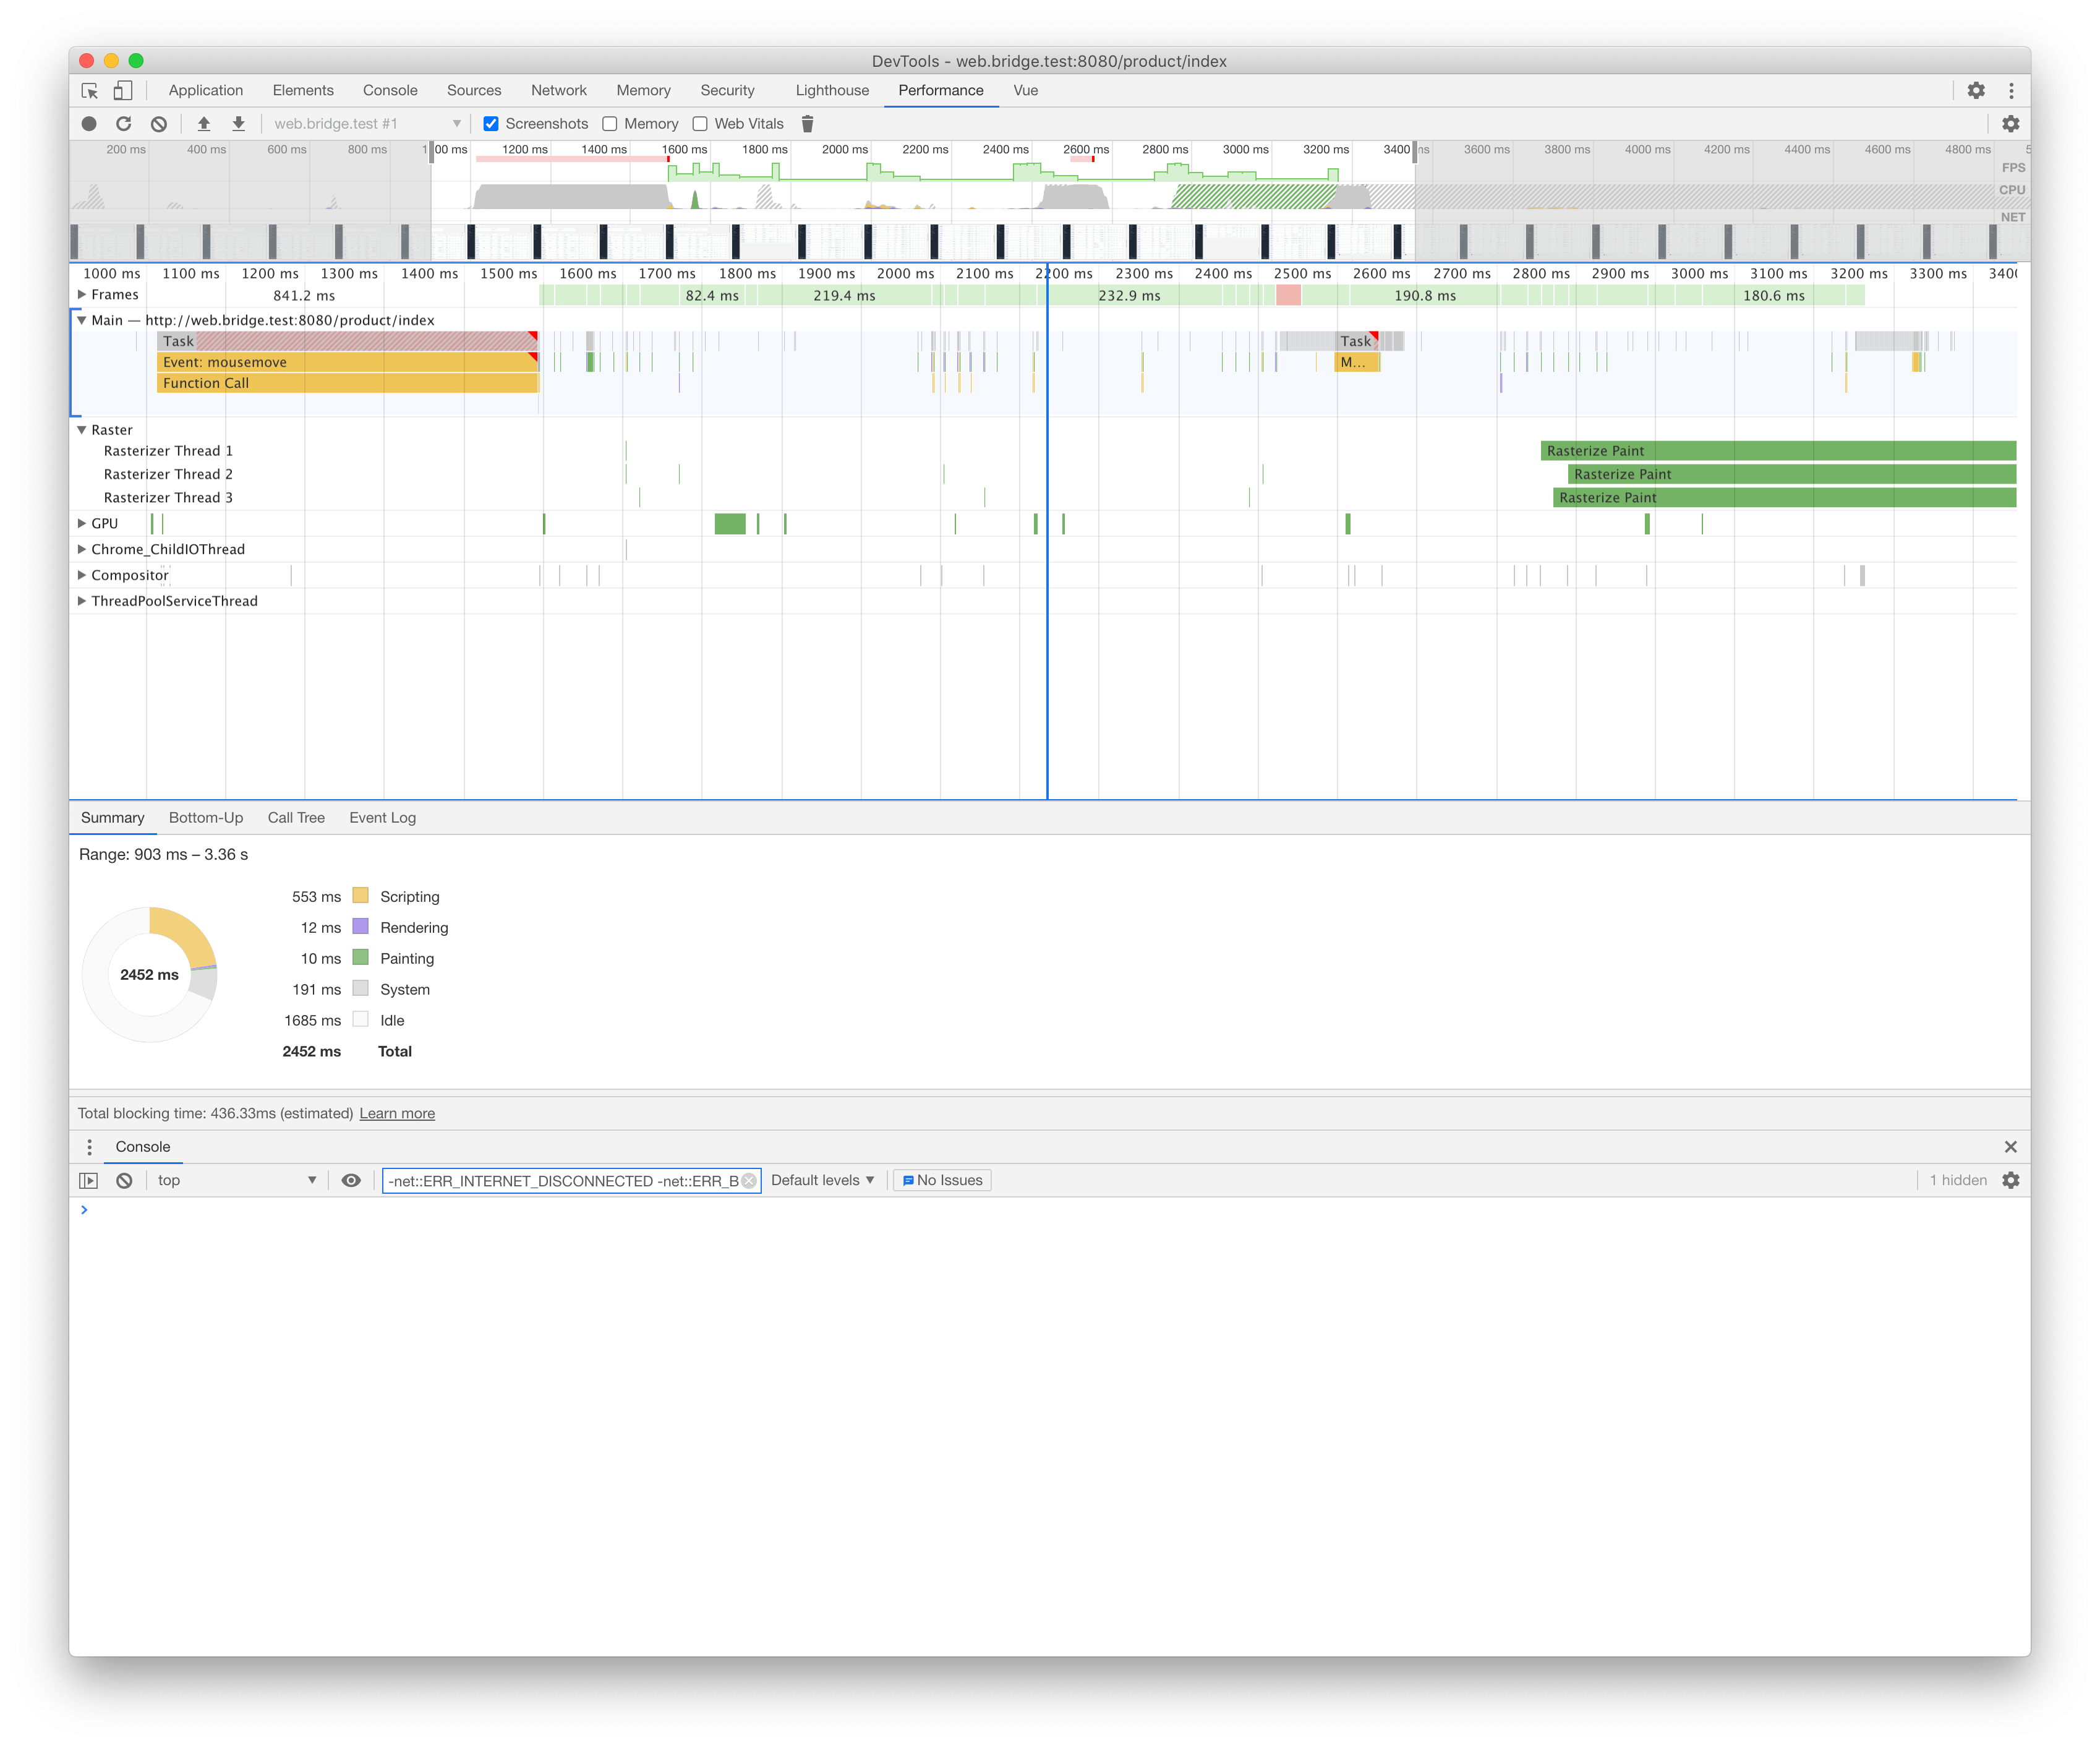 vue-tables no-sticky